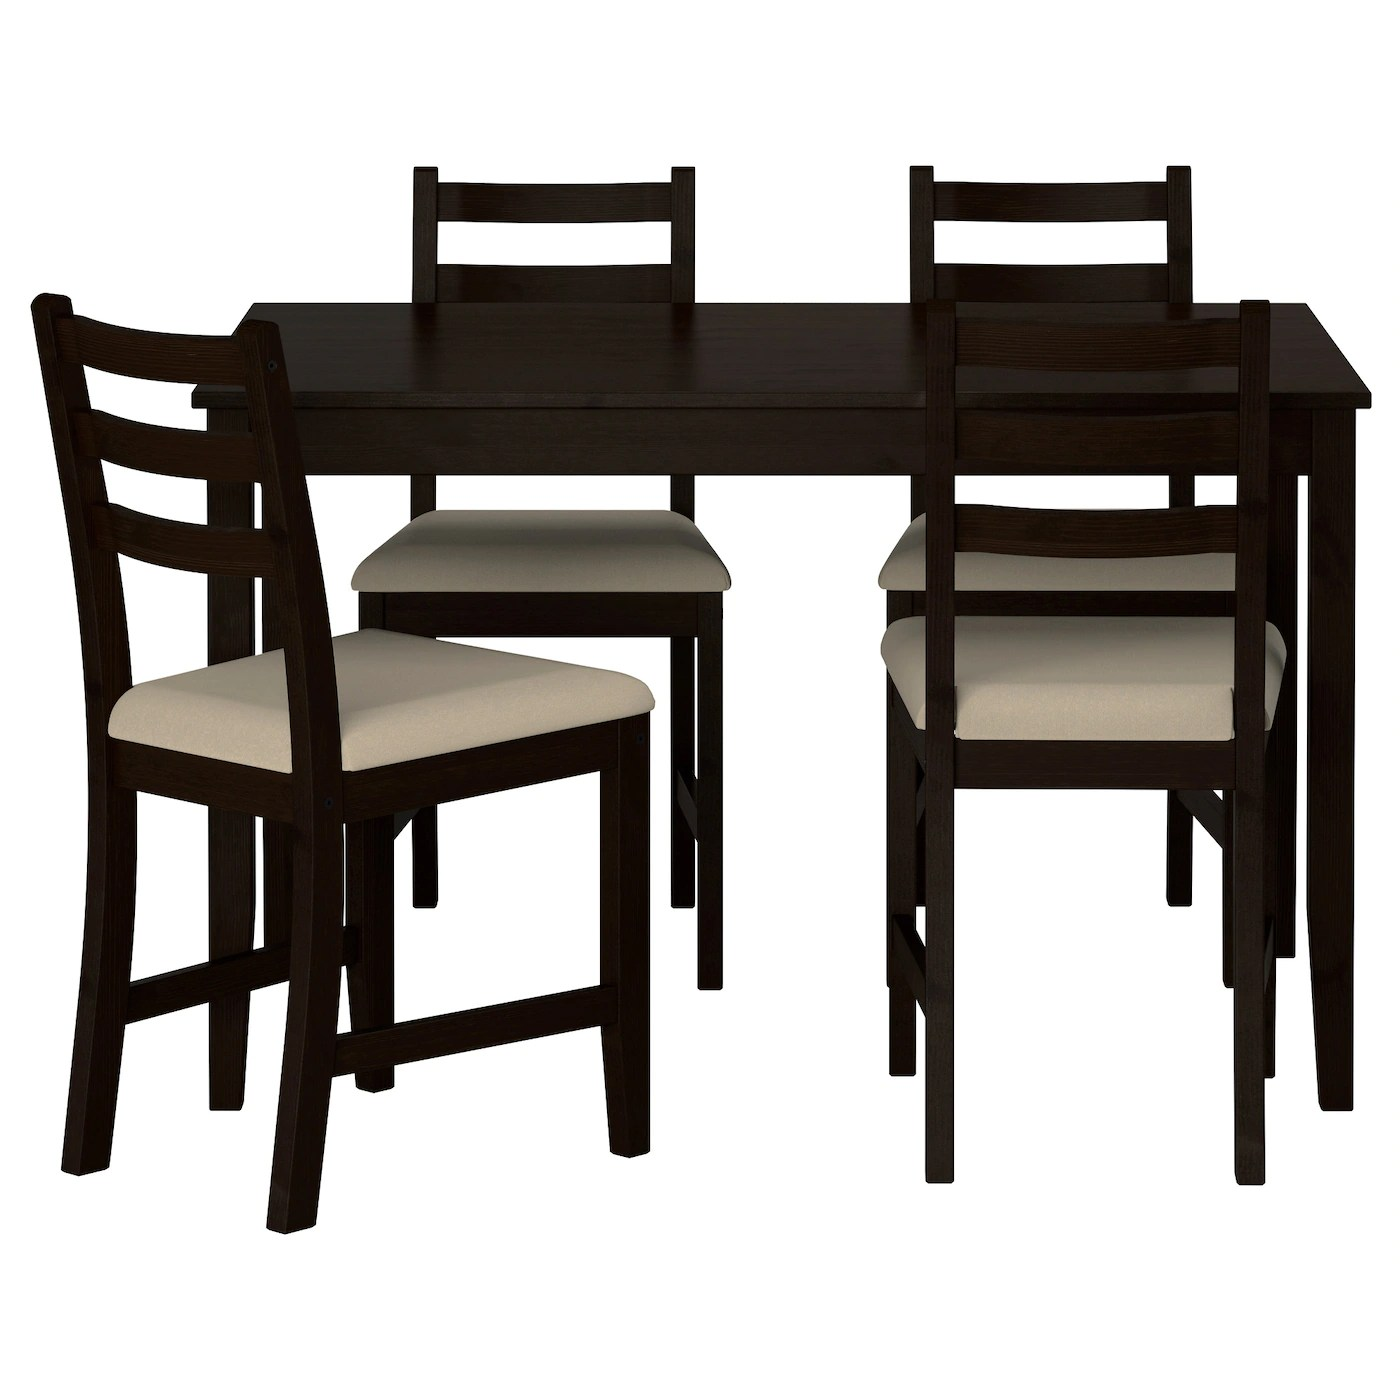 kitchen table stools windows dining sets room ikea lerhamn and 4 chairs